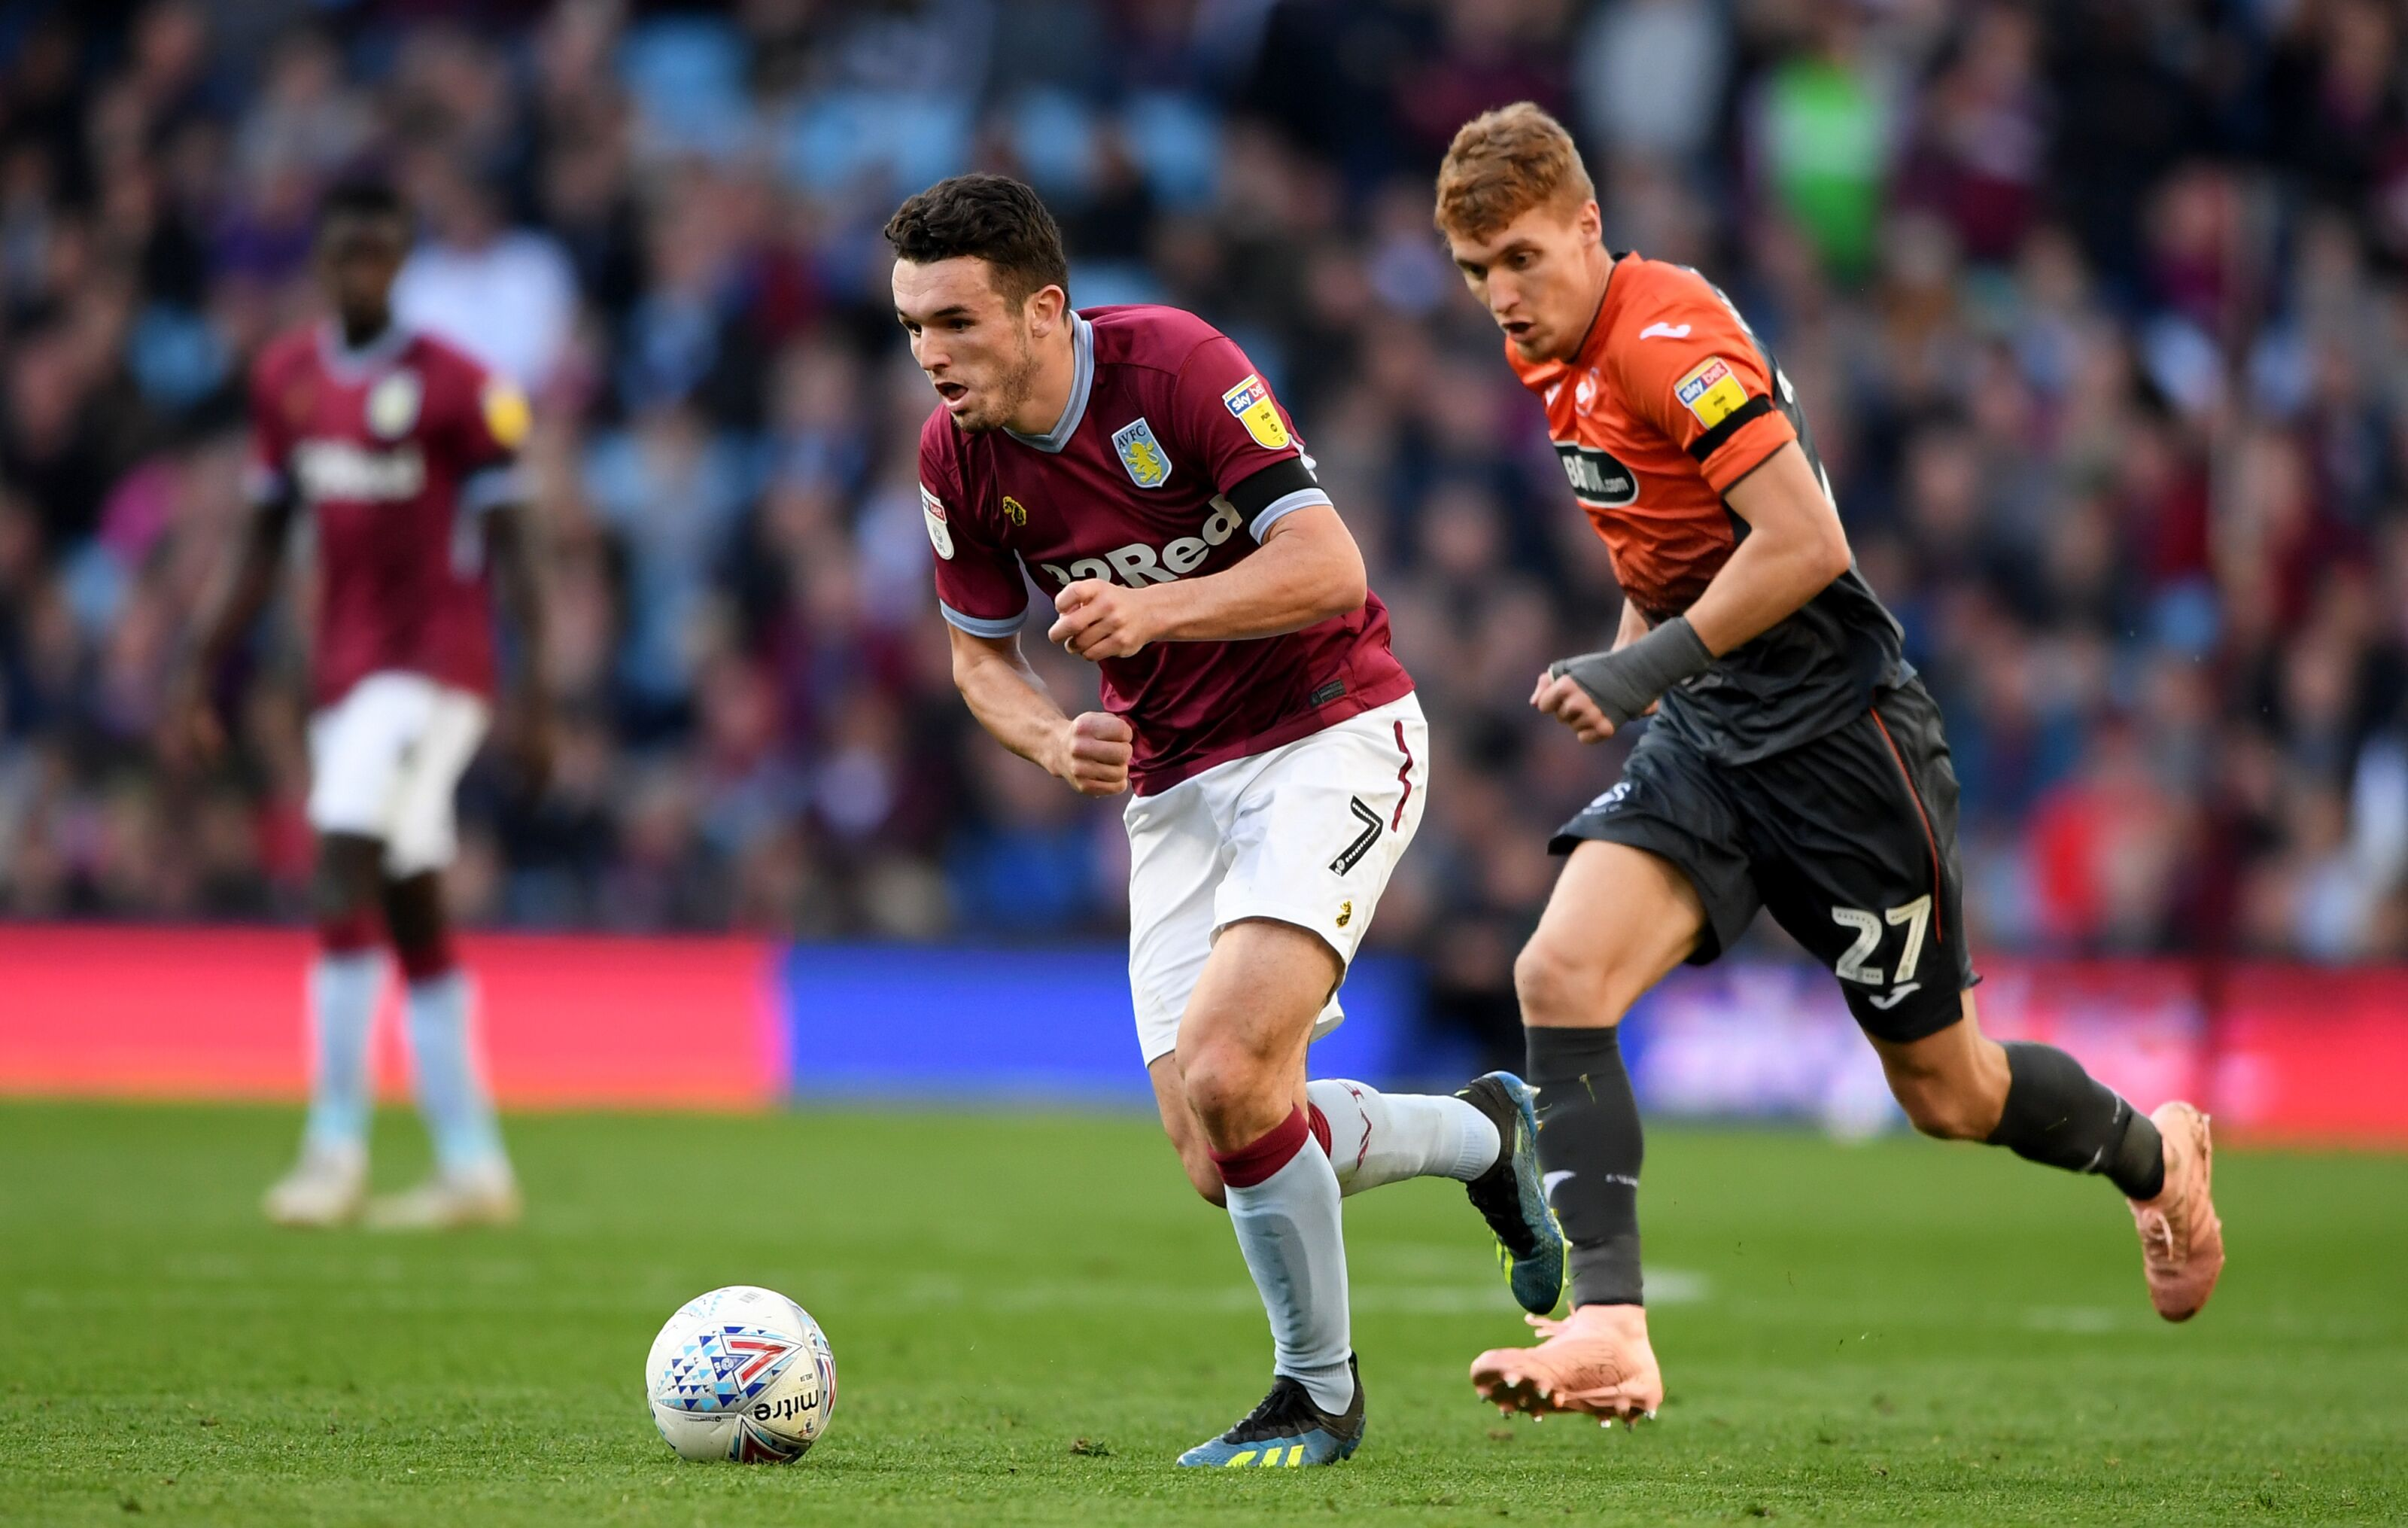 Aston Villa Vs Bristol City Stream